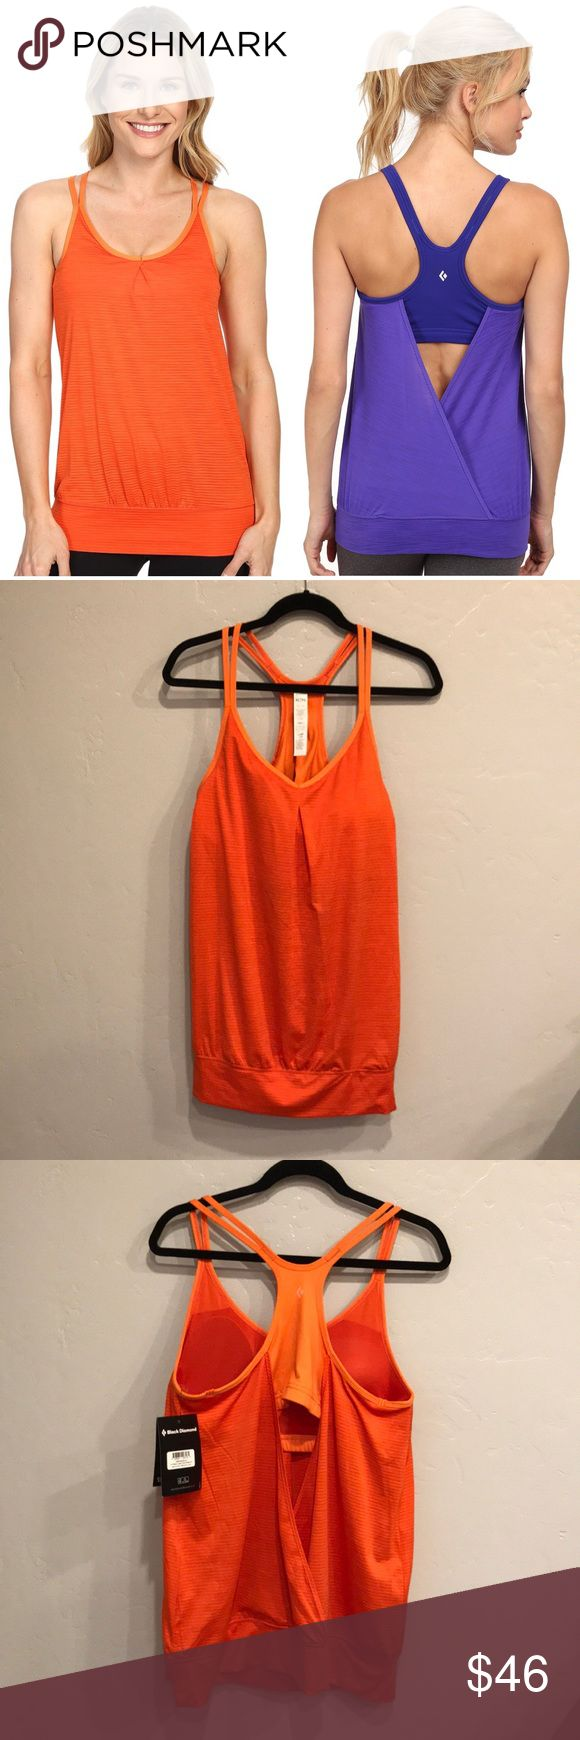 NWT Black Diamond Sheer Lunacy Tank Top - Orange This workout/climbing top is new with tags. It does have one minor imperfection (a slight pull pictured above). It is hardly noticeable when worn. Black Diamond is local to Salt Lake City, Utah (my home). They specialize in outdoor/rock climbing/workout gear and their quality is impeccable! This top is perfect for any of those activities. The color is vibrant orange (I just used the blue one to show fit). Make an offer and add this awesome top…